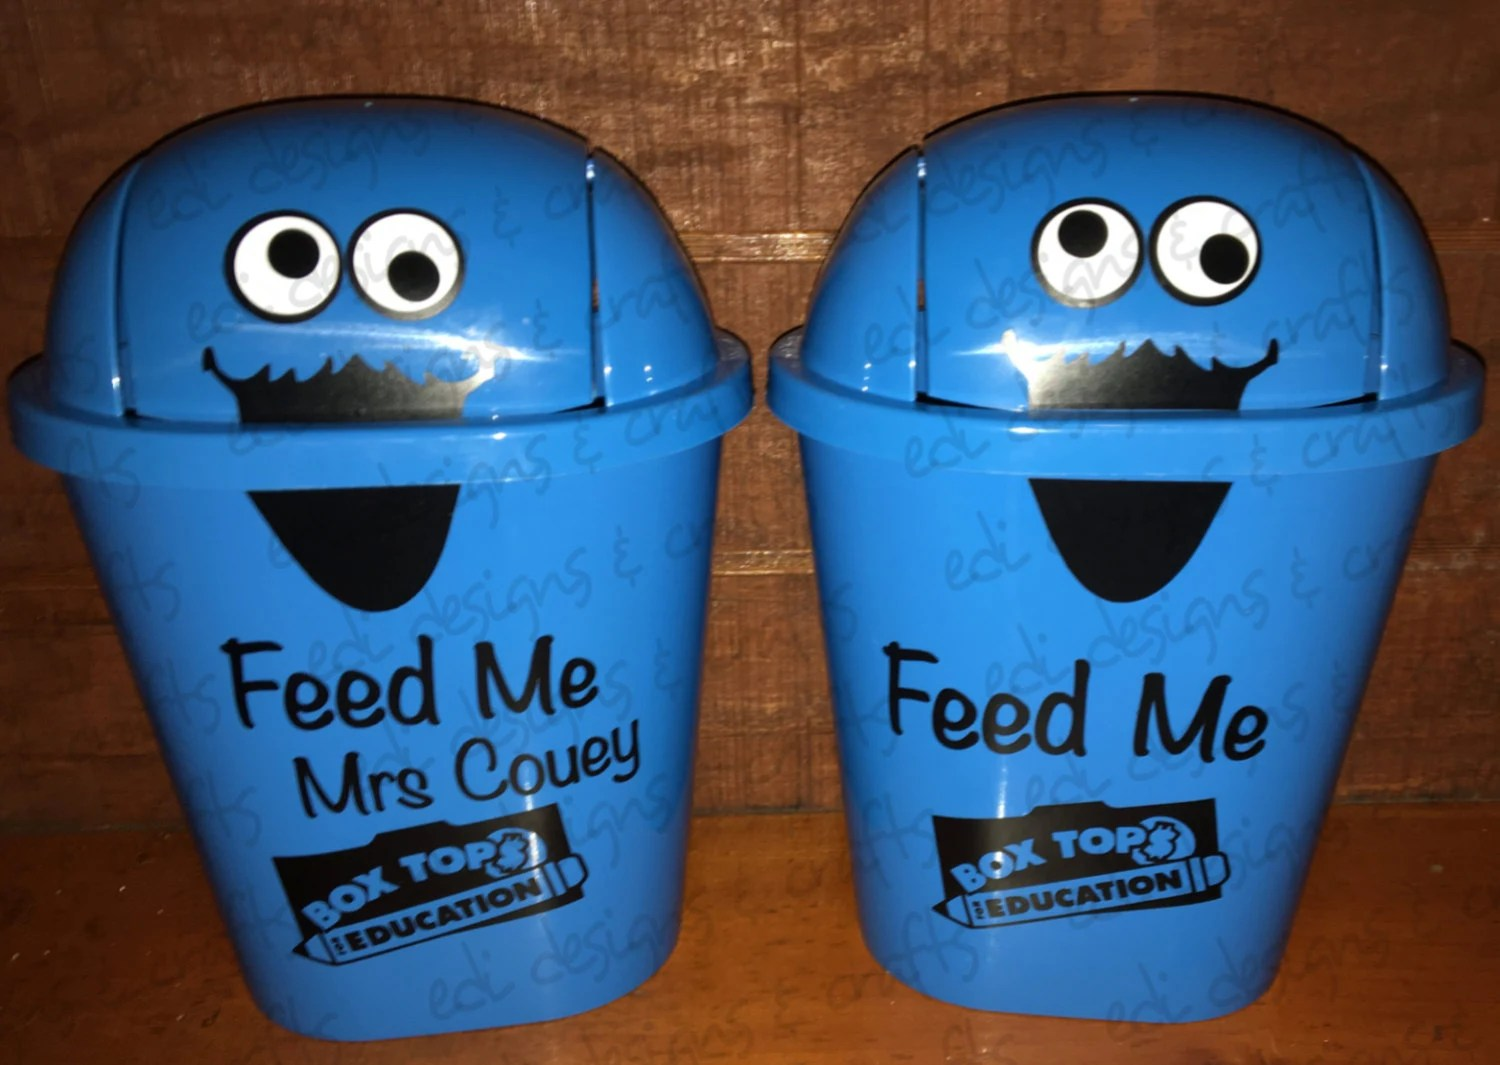 Fun Trash Can Feed Me Personalized Mini Trash Can Teacher Appreciation Gift Back To School Student Education Waste Basket Collect Money For Your School